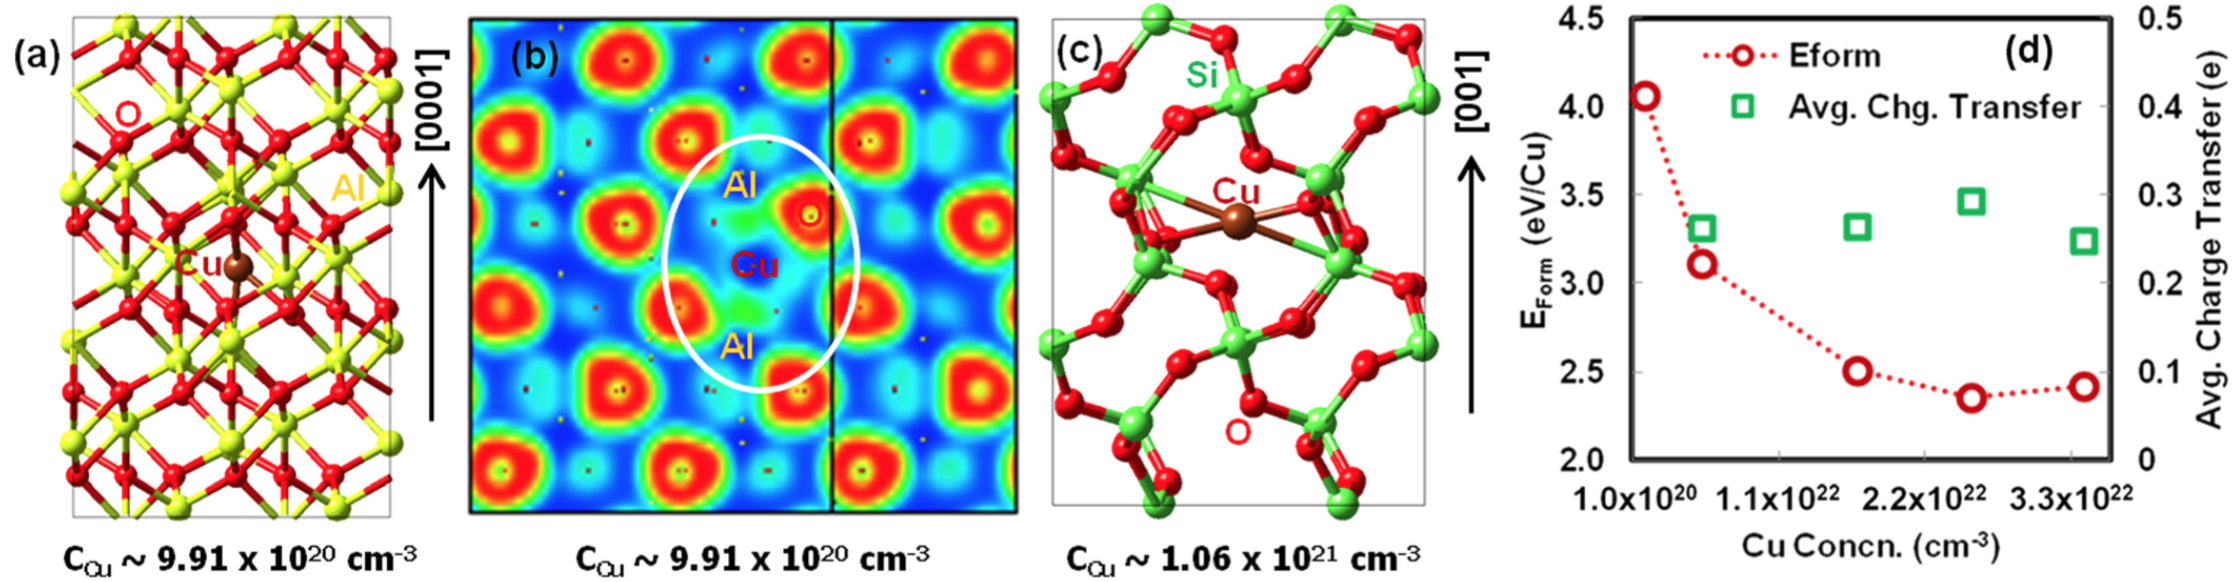 FIG. 1. (a) Structure of a single Cu impurity in a c-Al2O3 (R-3c) 2 2 1 super-cell. Red, brown, and yellow spheres represent O, Cu, and Al atoms, respec- tively. (b) Electron localization function in the plane passing through the center of the Cu impurity bonded to Al and O. Blue-green-red represents low-me- dium-high electron concentration from 0-0.5 to 1.0 e/A ̊ 3, respectively. (c) Cu interaction with Si and O in a-quartz c-SiO2. Red, brown, and green spheres are O, Cu, and Si atoms, respectively. (d) The computed formation energy (eV per Cu atom) (circles) and the average charge transfer (squares) as a function of Cu impurity concentration in SiO2.